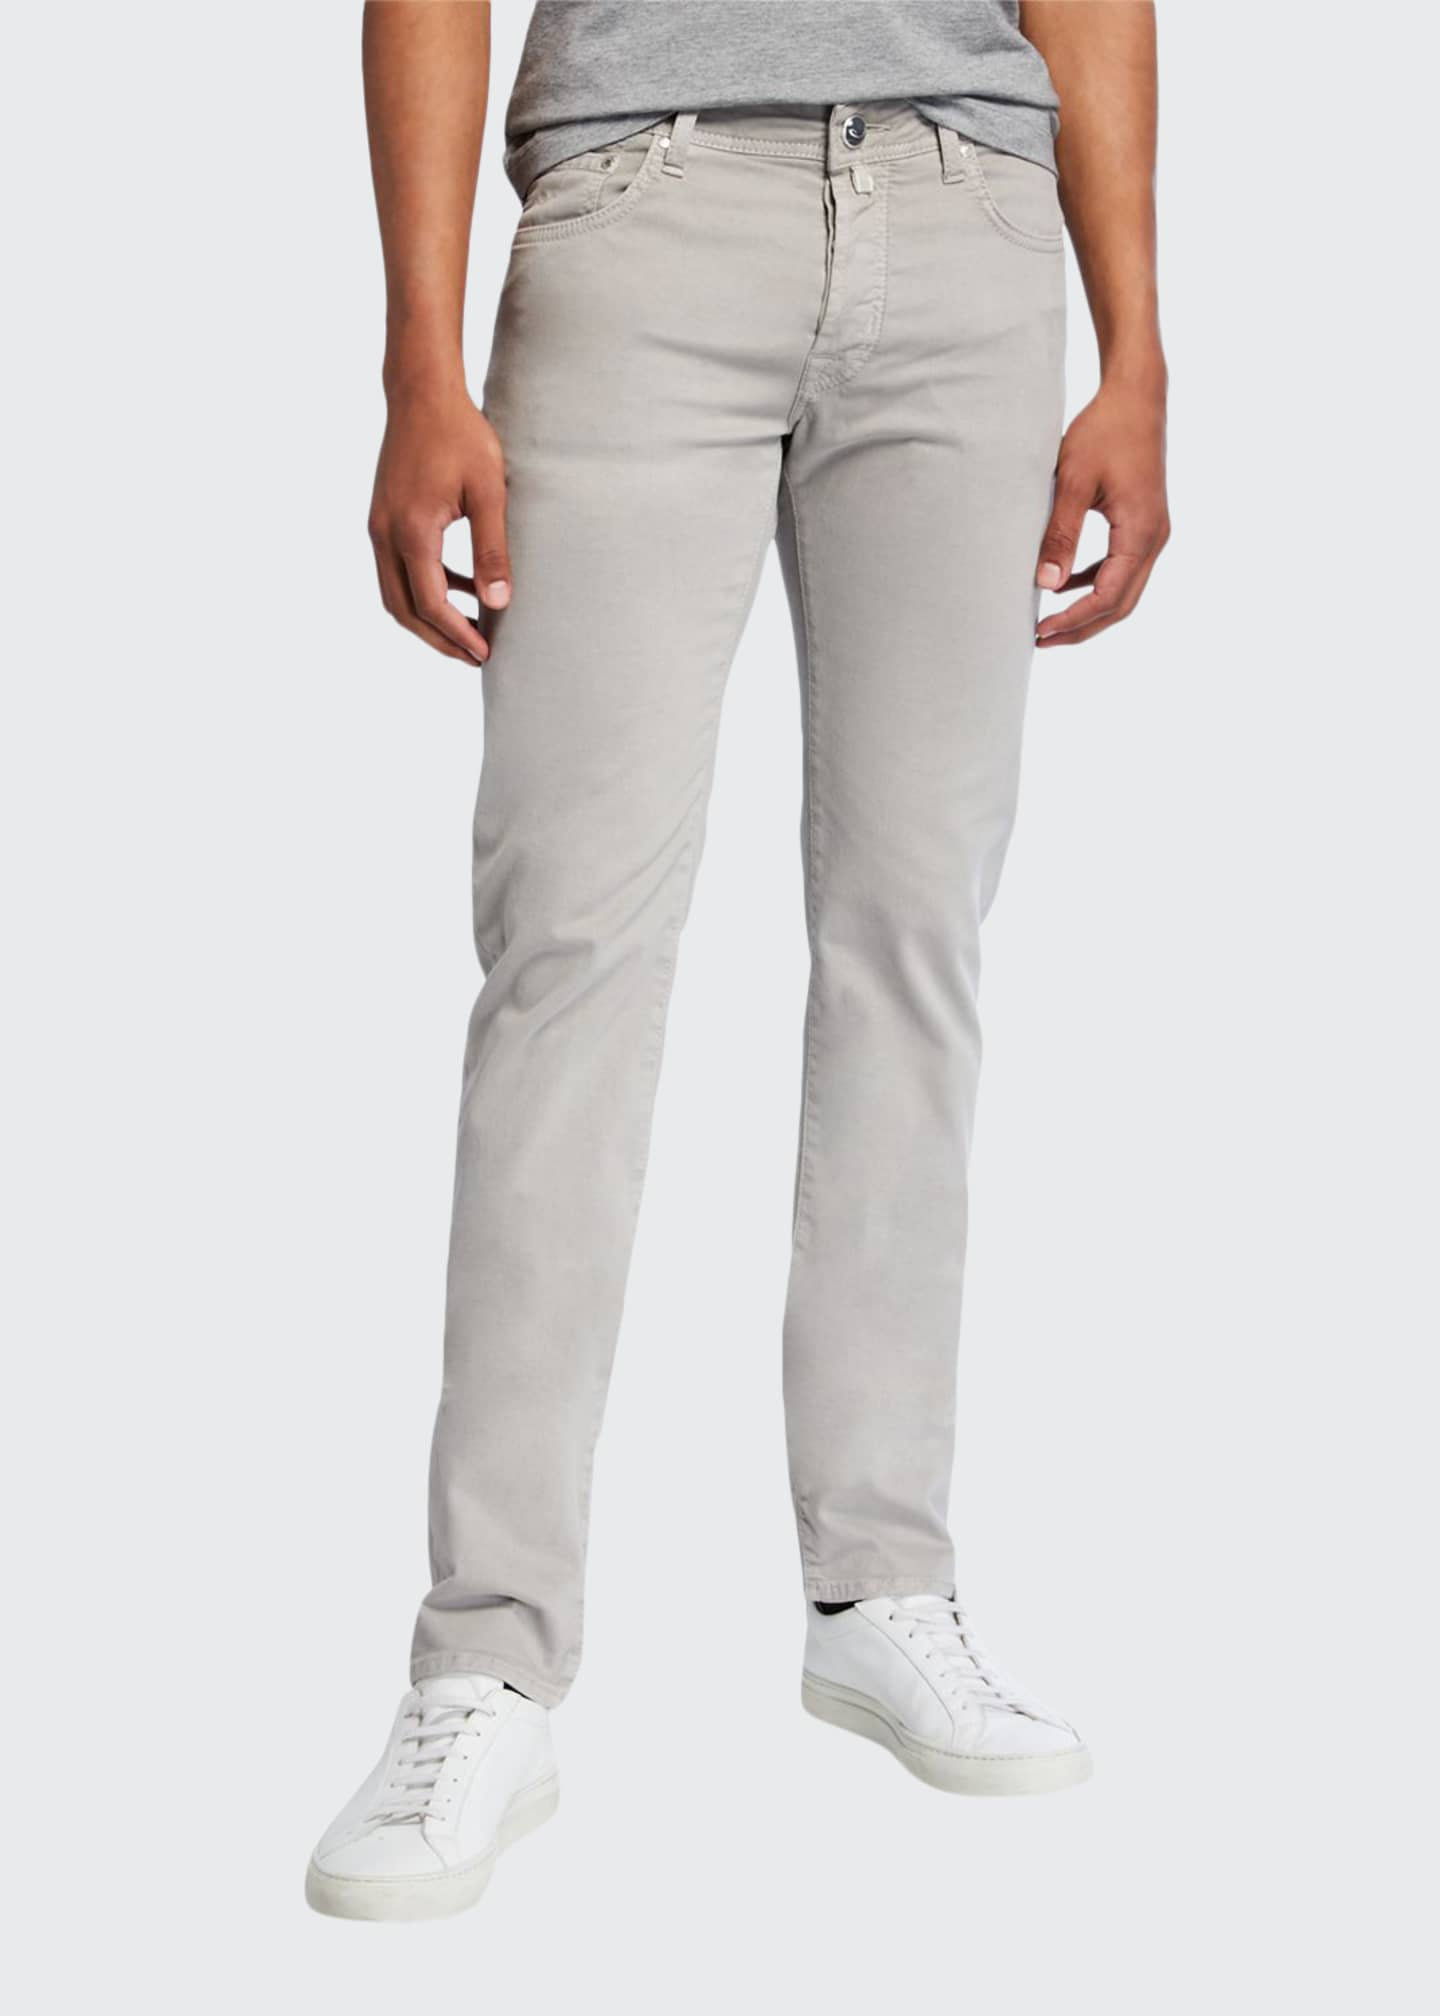 Image 1 of 3: Men's Brushed Denim 5-Pocket Jeans , Light Gray